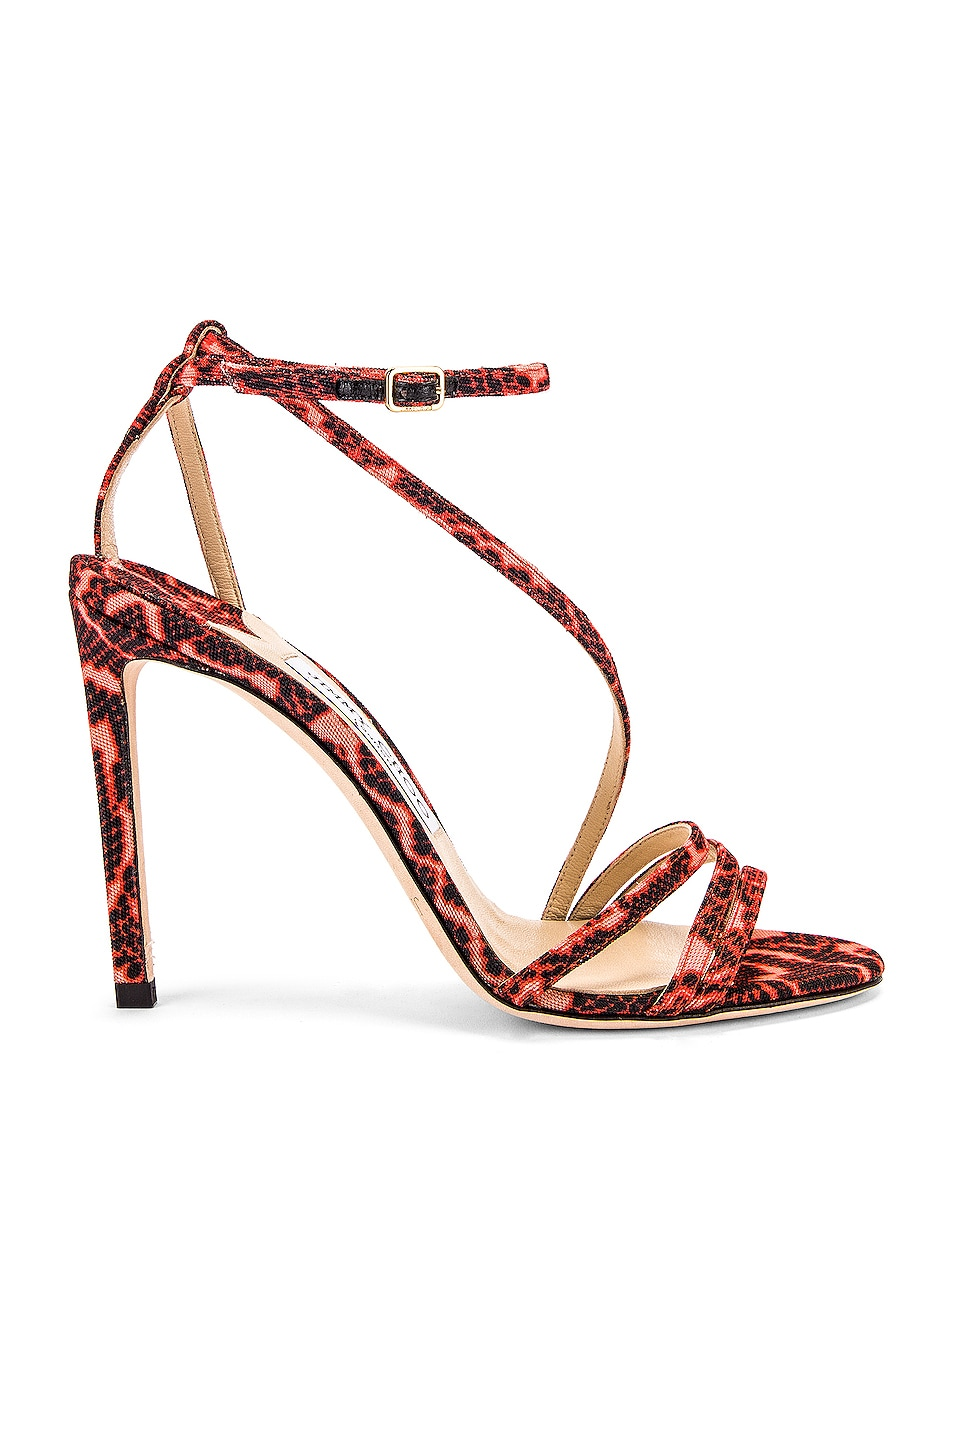 Image 1 of Jimmy Choo Tesca 100 Sandal in Mandarin Red Mix